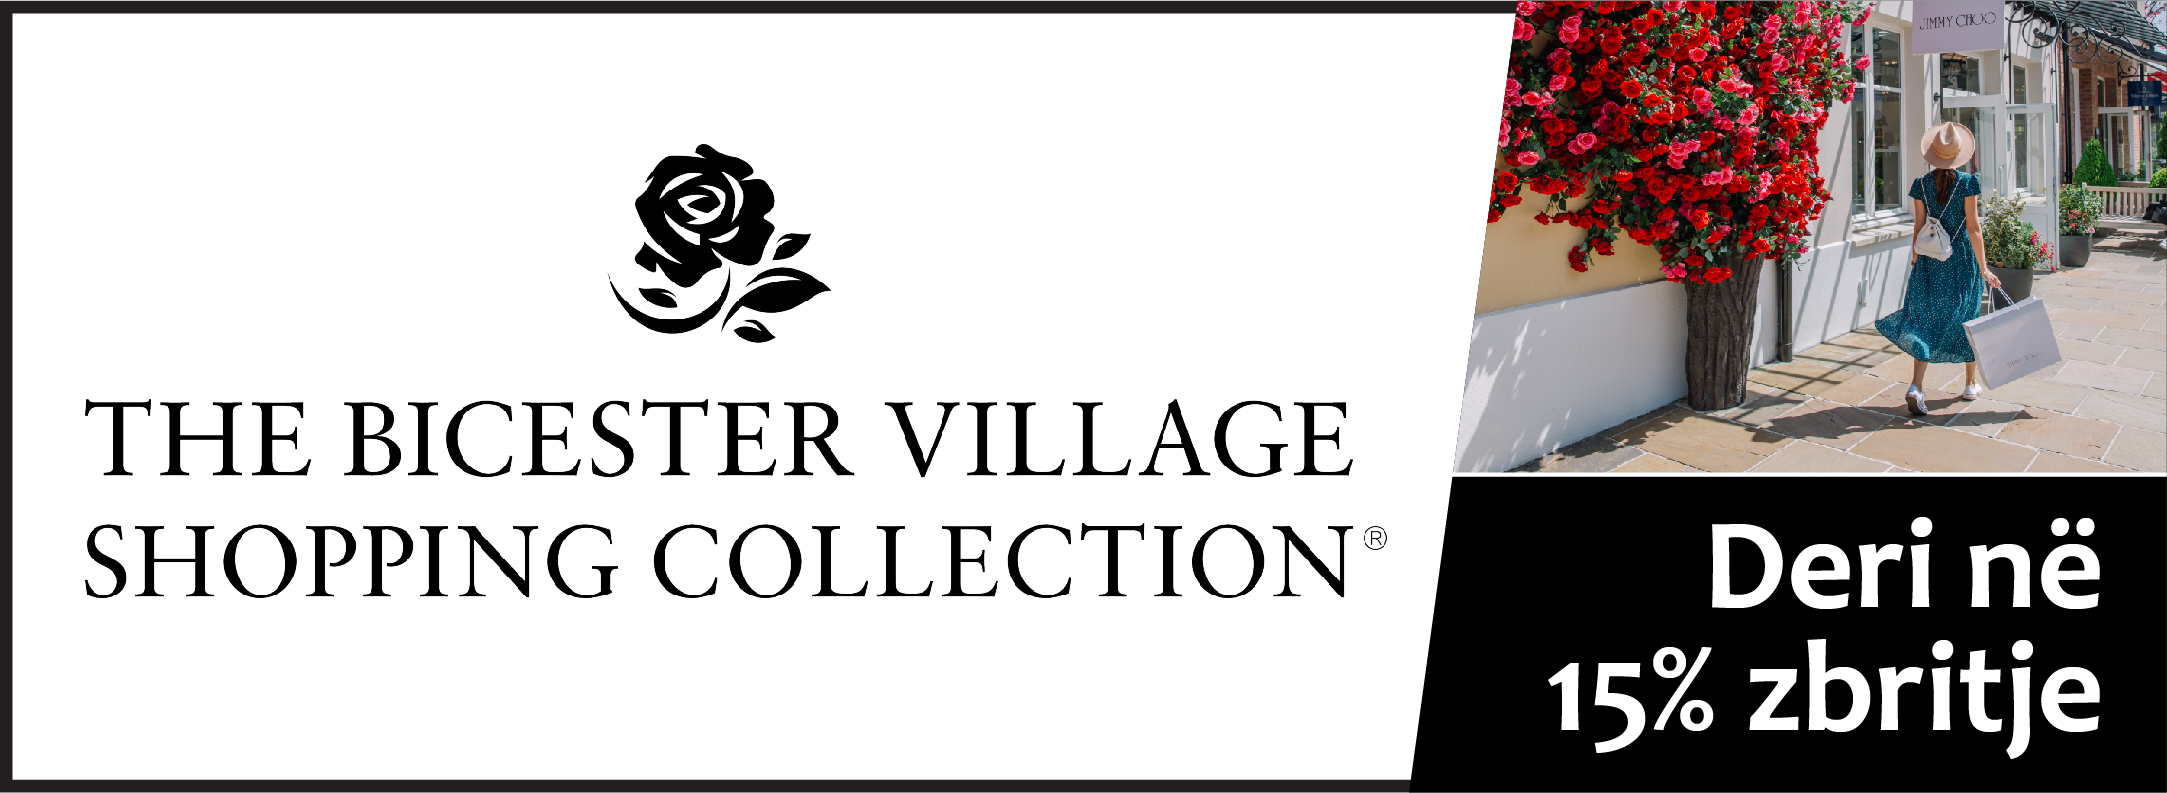 The Bicester Village Shopping Collection